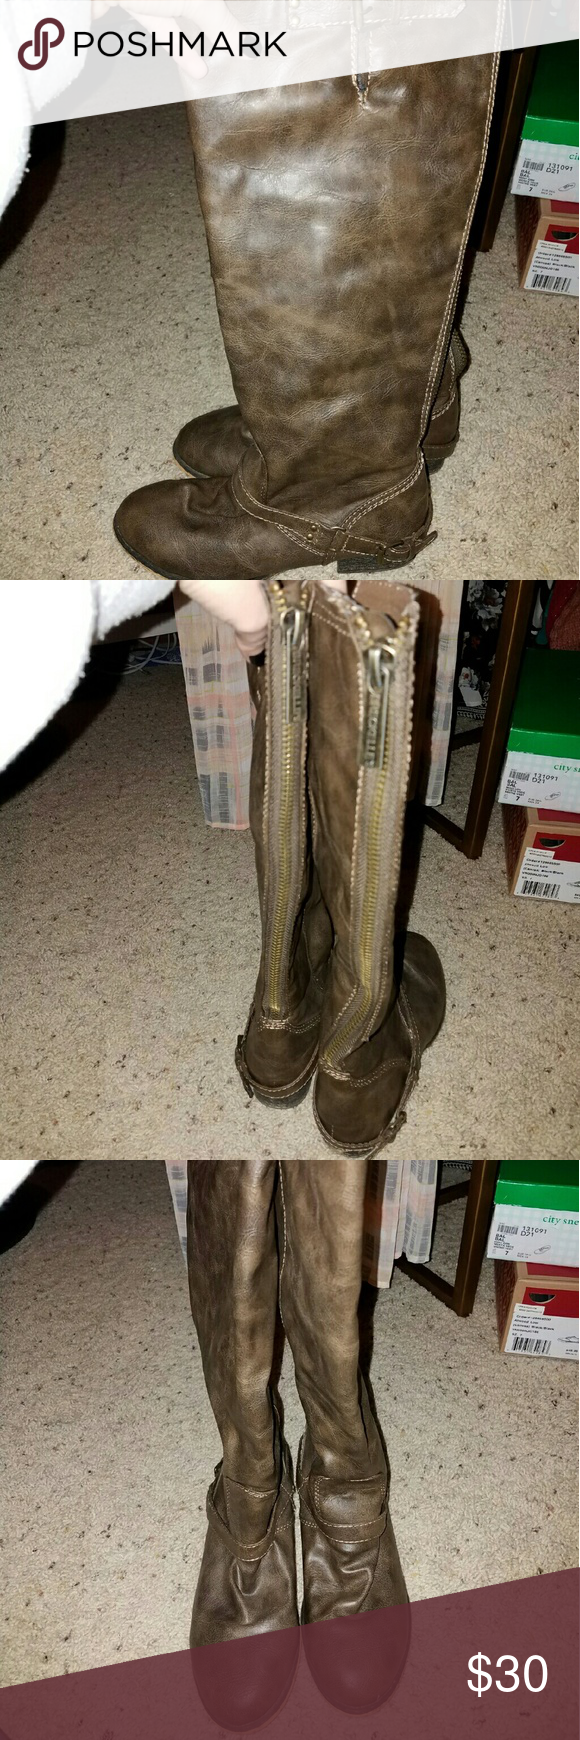 Brown riding boots worn a handful of times, very good condition Shoes